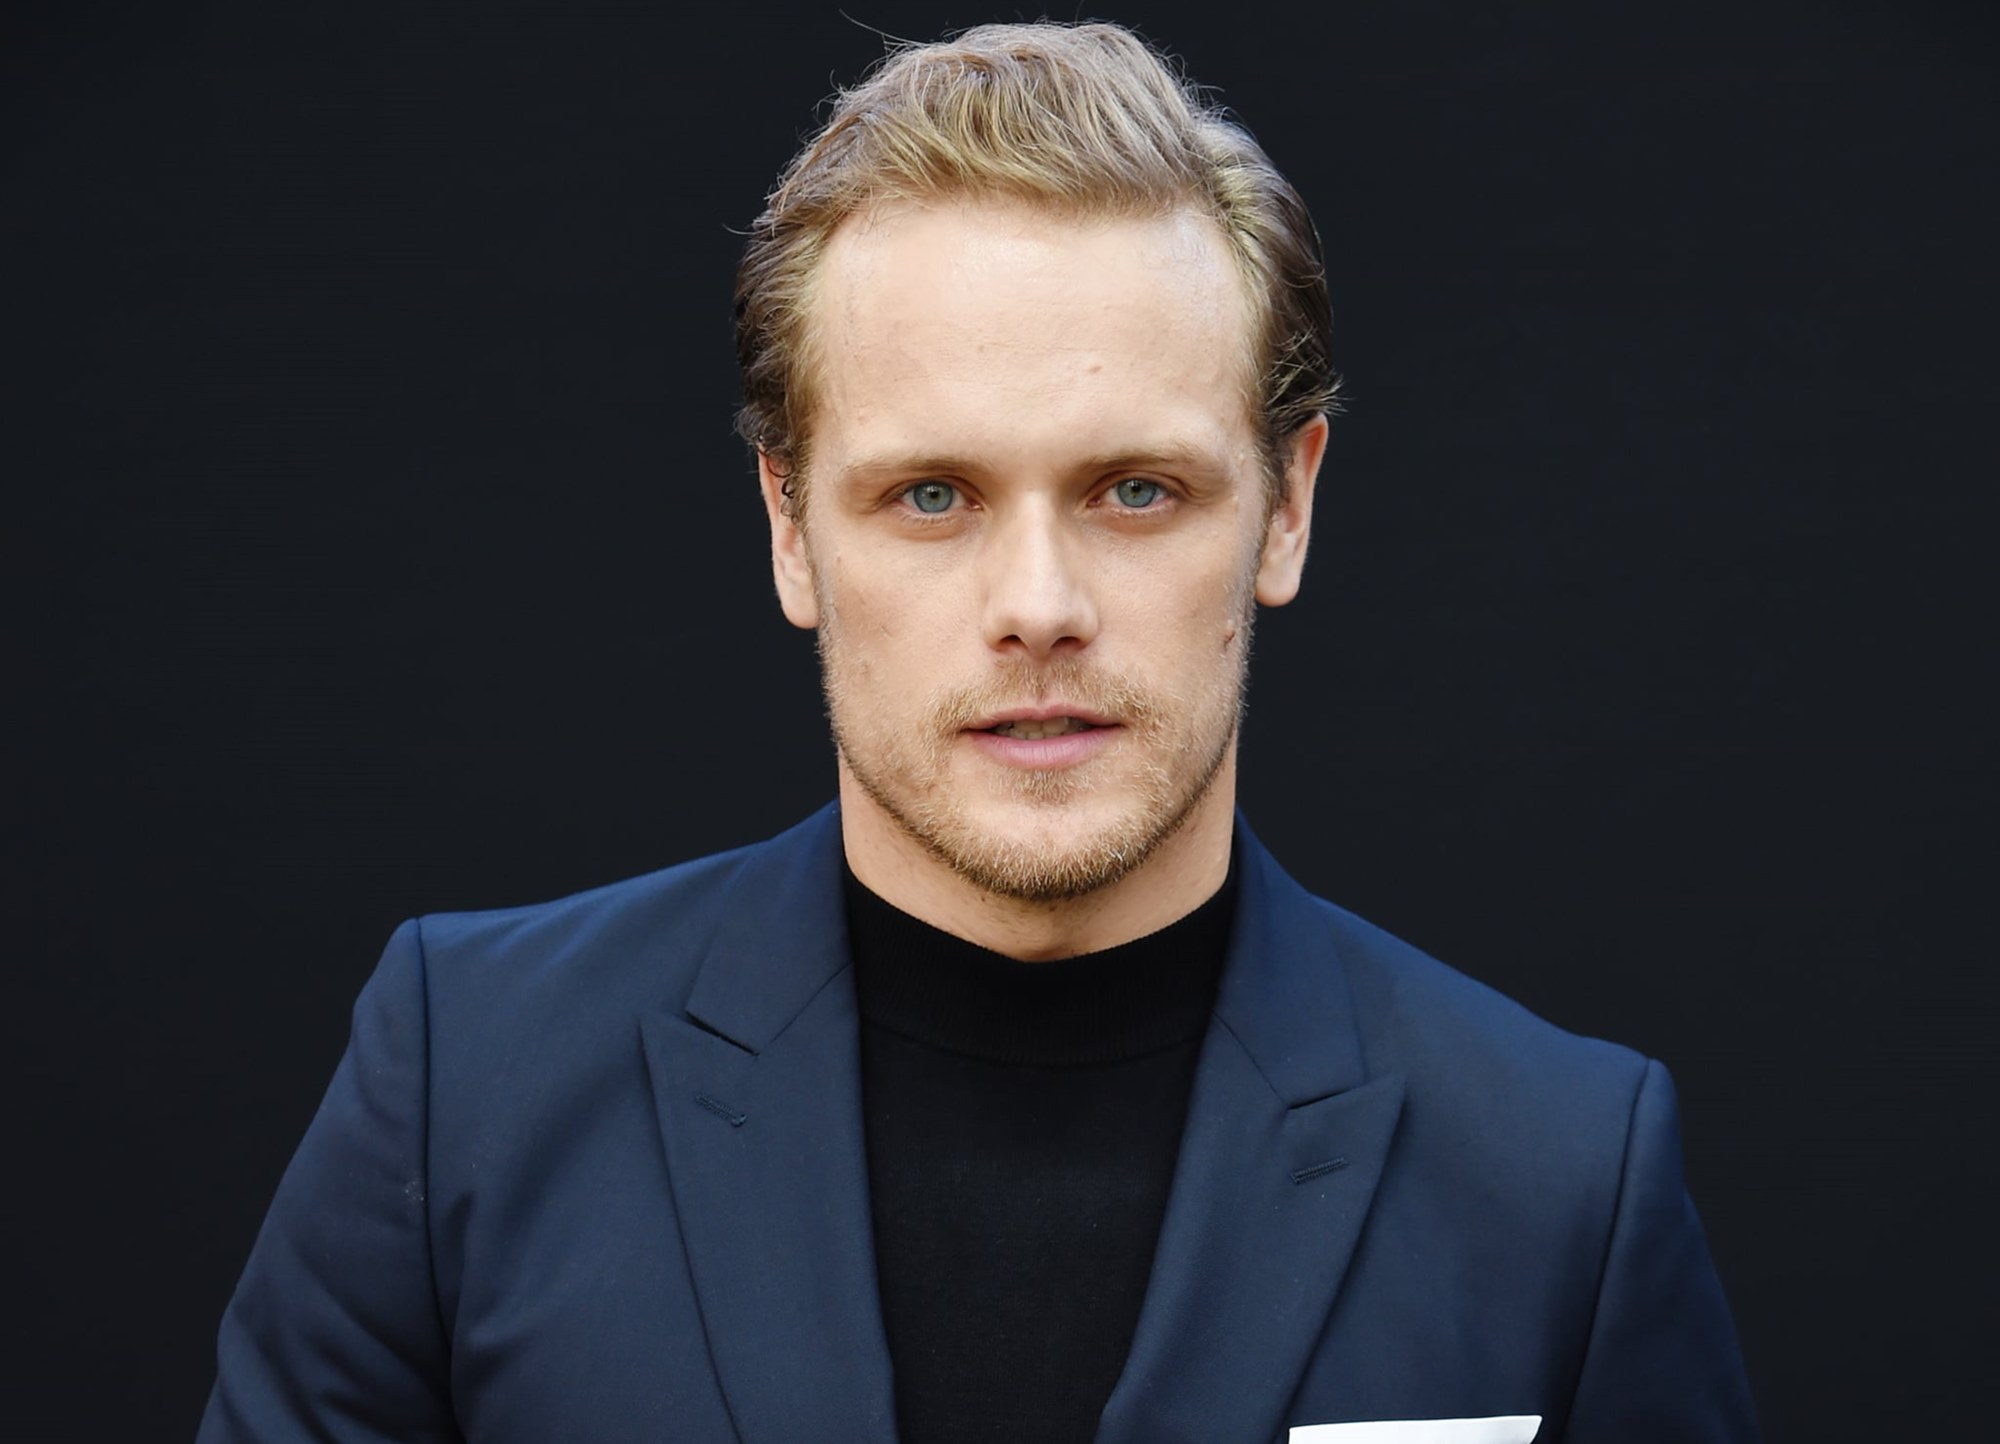 Sam Heughan 'Outlander' Star Takes On Bullies